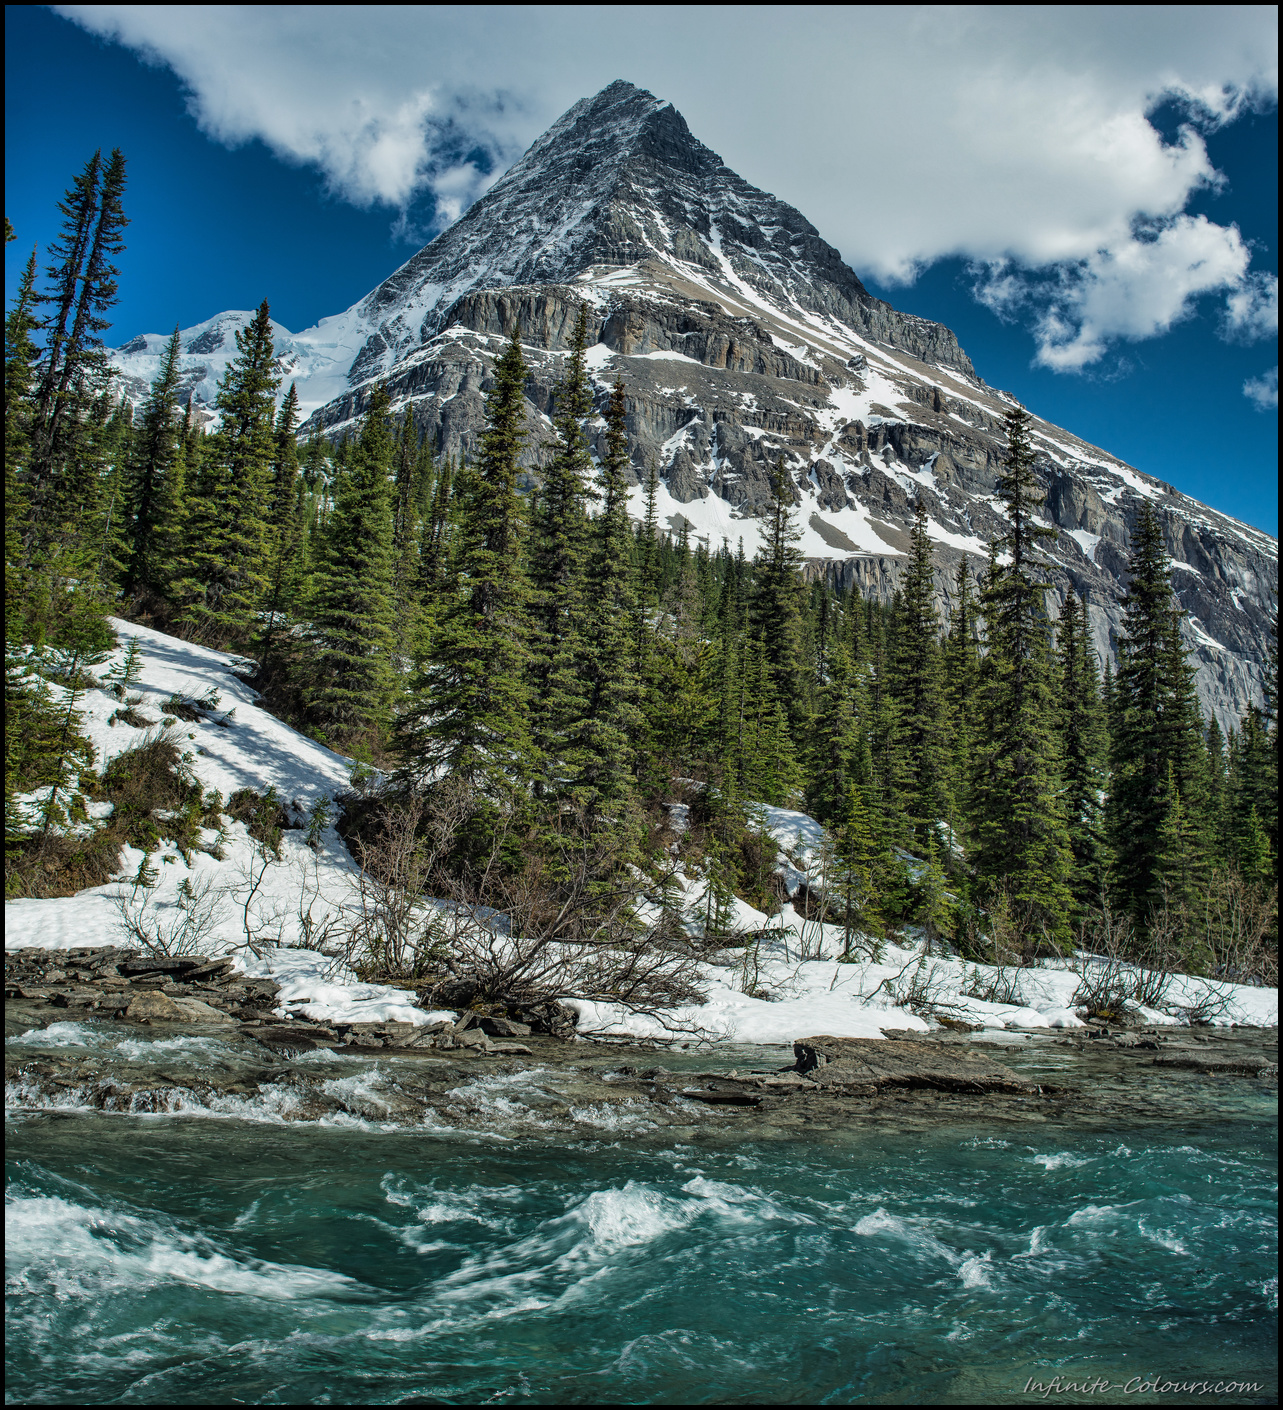 Mighty Robson as seen from Emperor Falls campsite on Berg Lake Trail, stitch Panorama